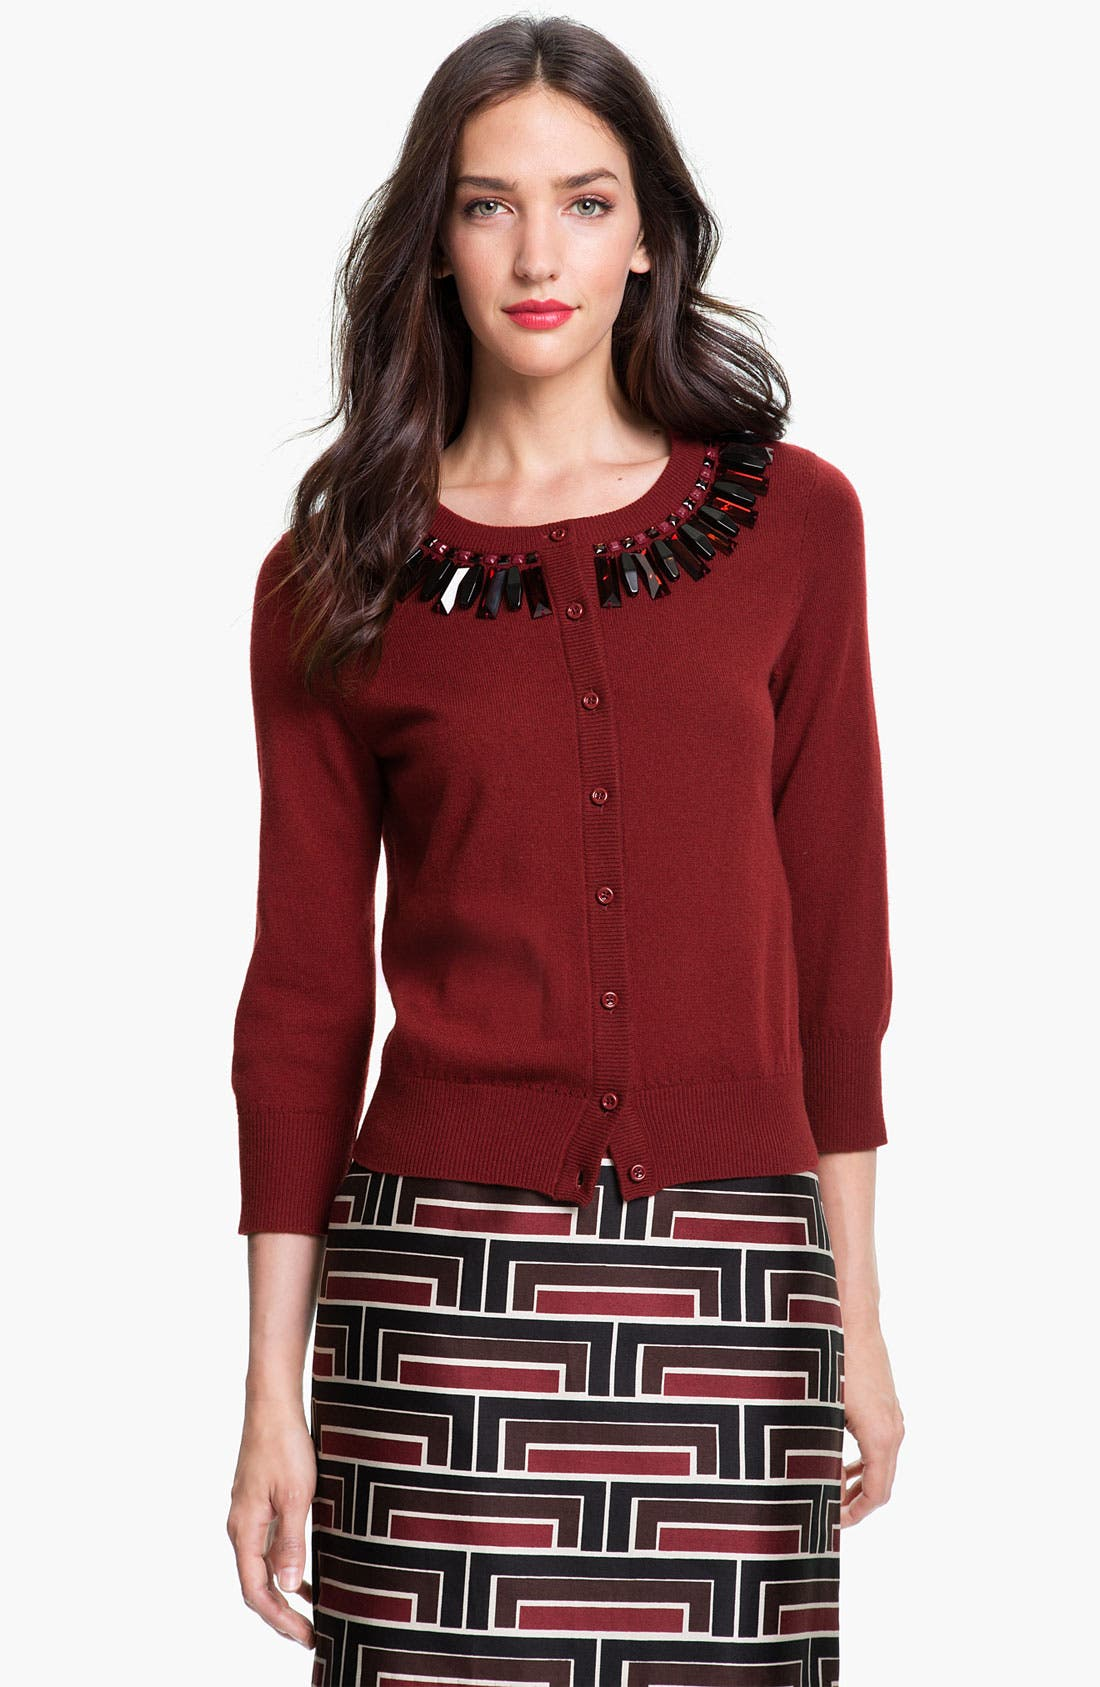 Main Image - kate spade new york 'kati' embellished cardigan